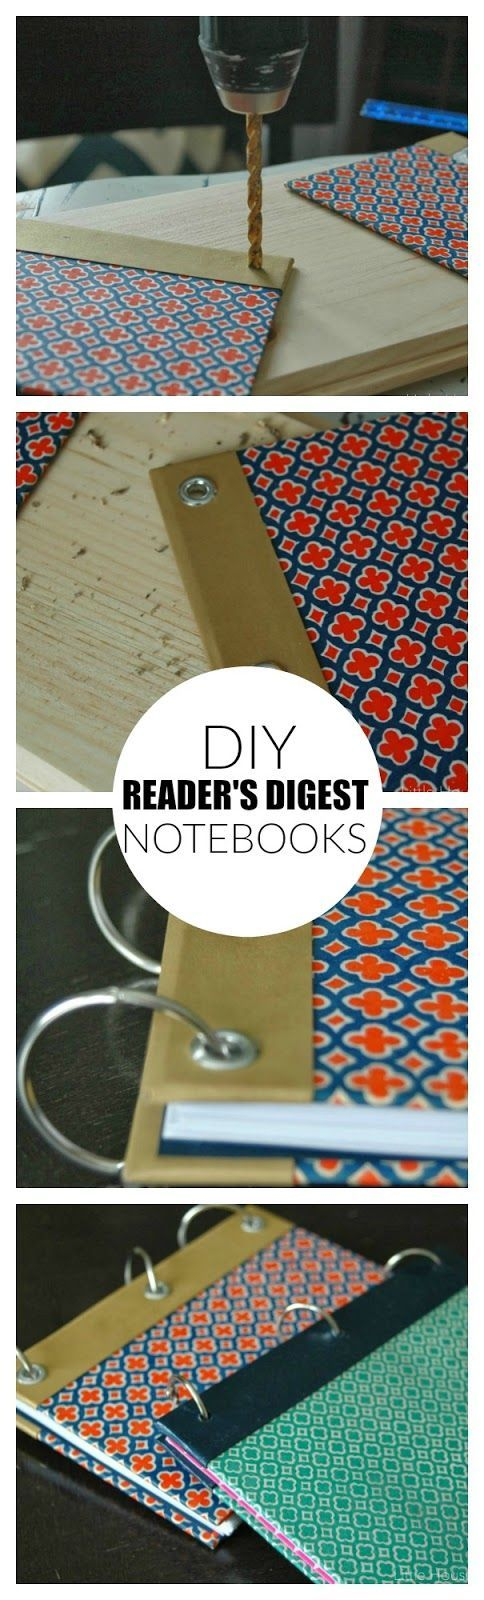 Turn the bright and vibrant covers of Reader's Digest books into beautiful notebooks! Little House of Four